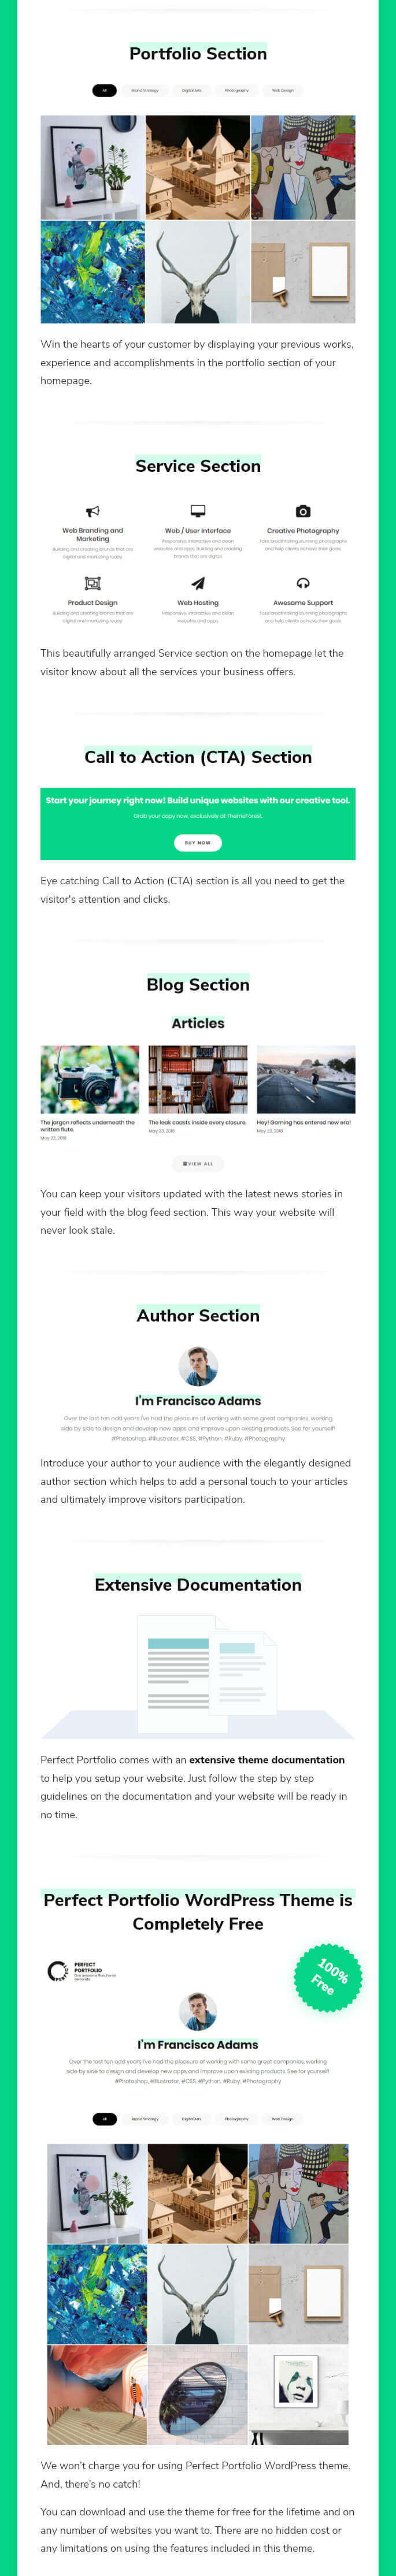 Free WordPress Portfolio Theme for Business and Personal Websites